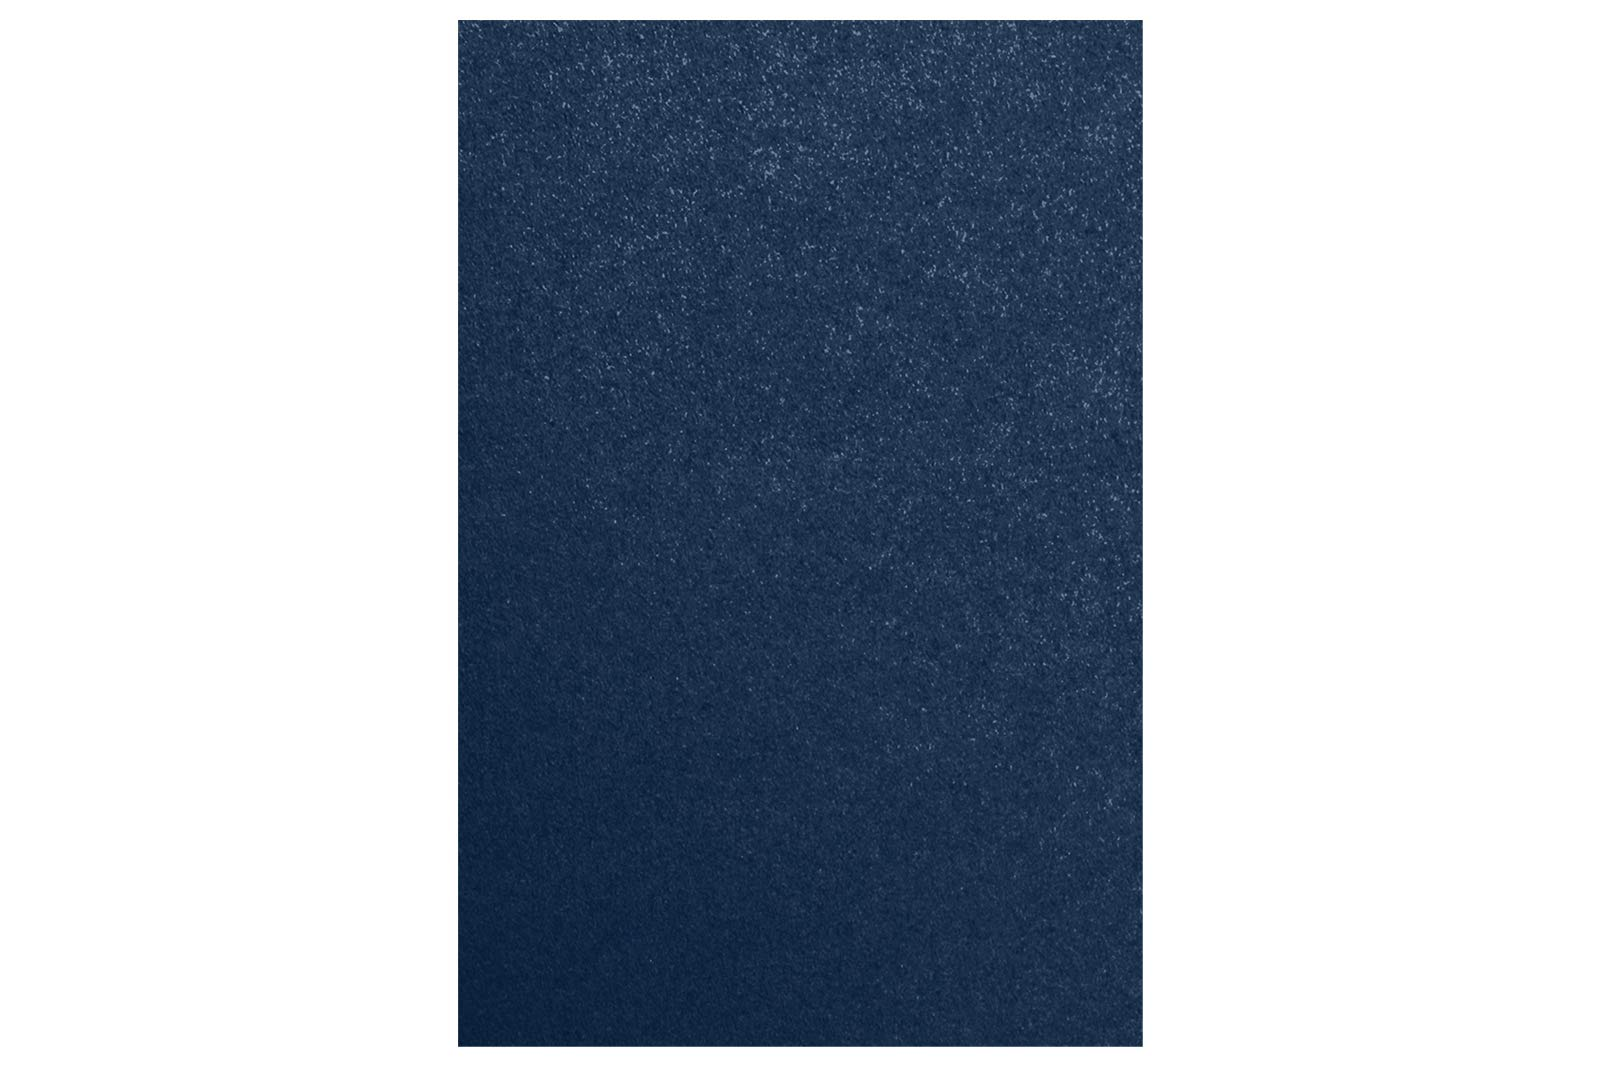 12 x 18 Cardstock - Lapis Metallic - Stardream (50 Qty.) | Perfect for Holiday Crafting, Invitations, Scrapbooking, Cards and so much more! | 1218-C-M211-50